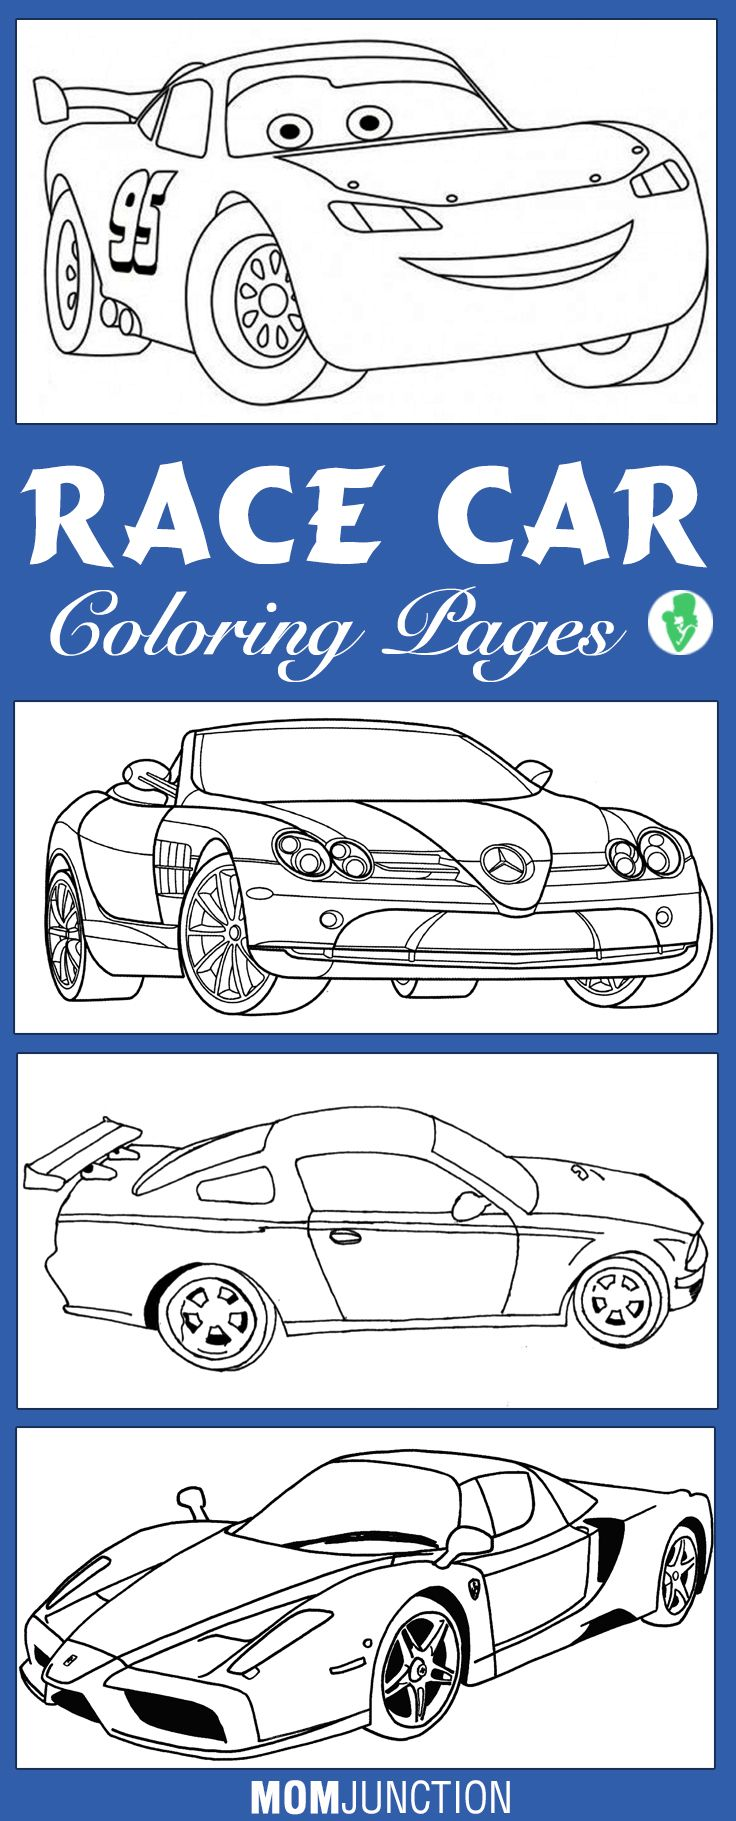 Free coloring pages race cars - Top 10 Race Car Coloring Pages For Your Little Ones